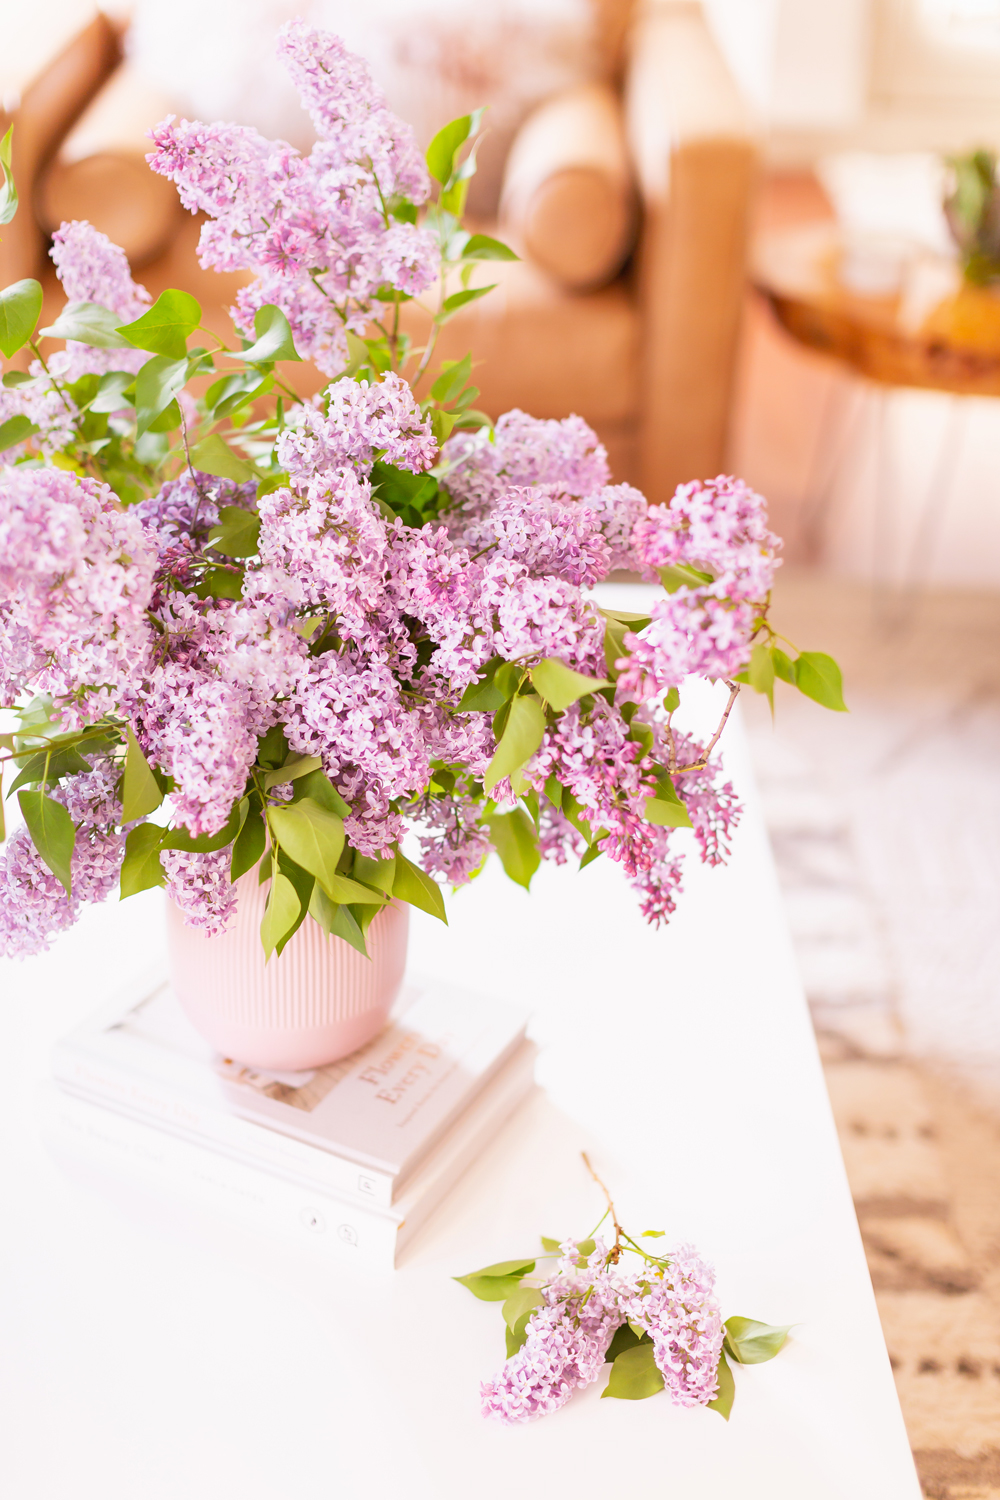 An oversized lilac bouquet and single lilac bough on a white coffee table in JustineCelina's light and airy mid century meets boho modern living room | DIY Lilac Flower Arrangement | How to Forage Lilacs | How to Prolong Lilac Vase Life | How to Arrange Lilacs | Fresh Lilac Flower Bouquet | Extremely Pretty Lilac Arrangement | Purple Lilac Arrangement | How to Cut Lilacs from a tree or bush | Calgary Creative Lifestyle Blogger // JustineCelina.com